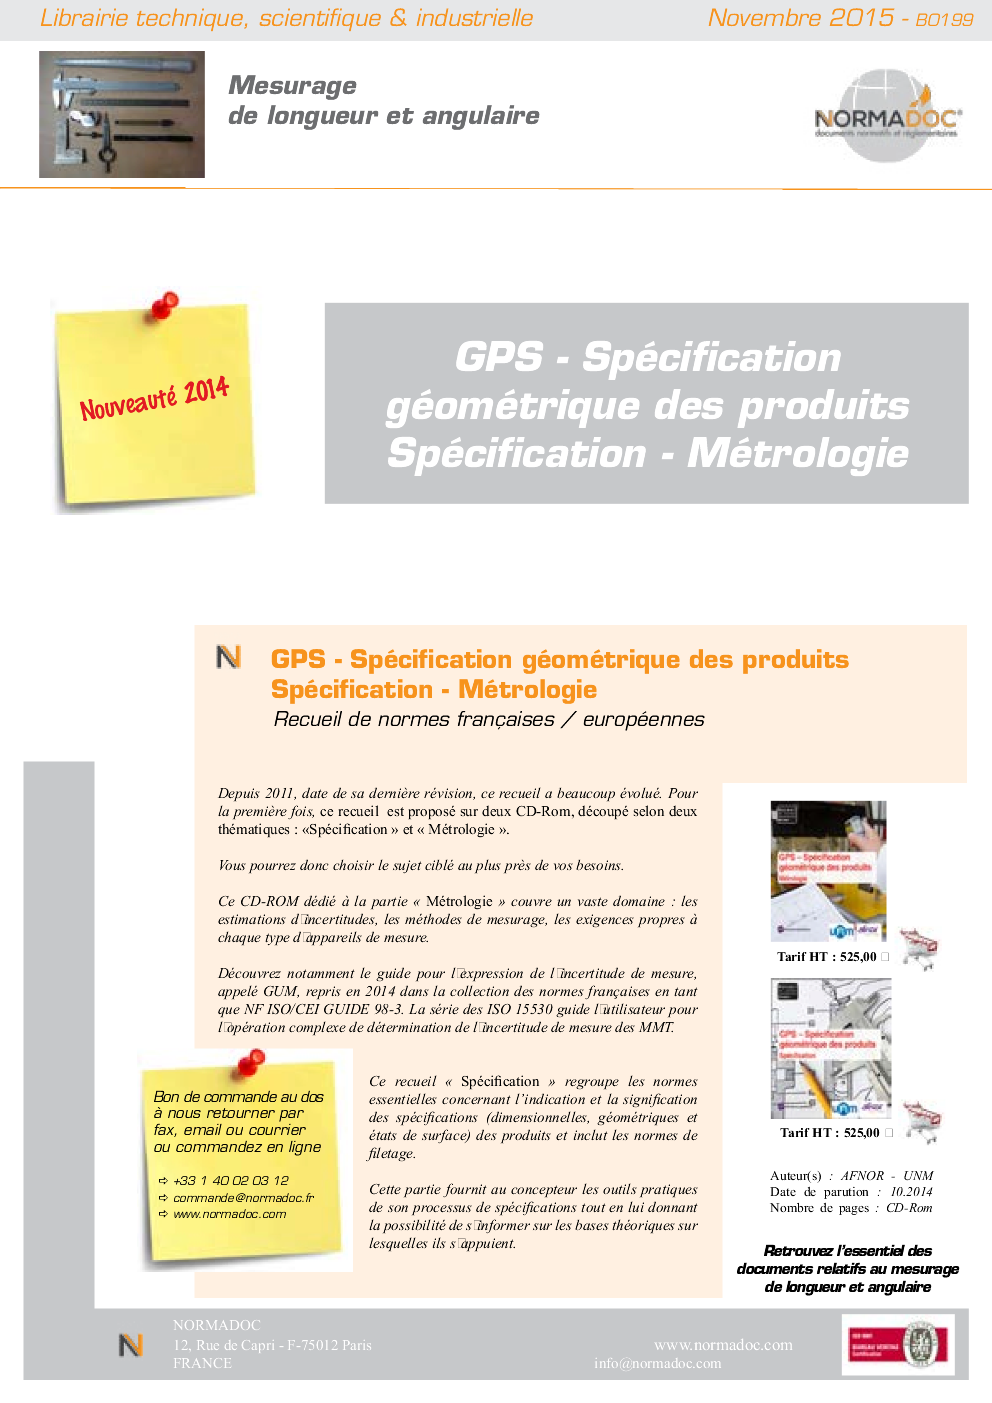 Geometric Product Specification (GPS)